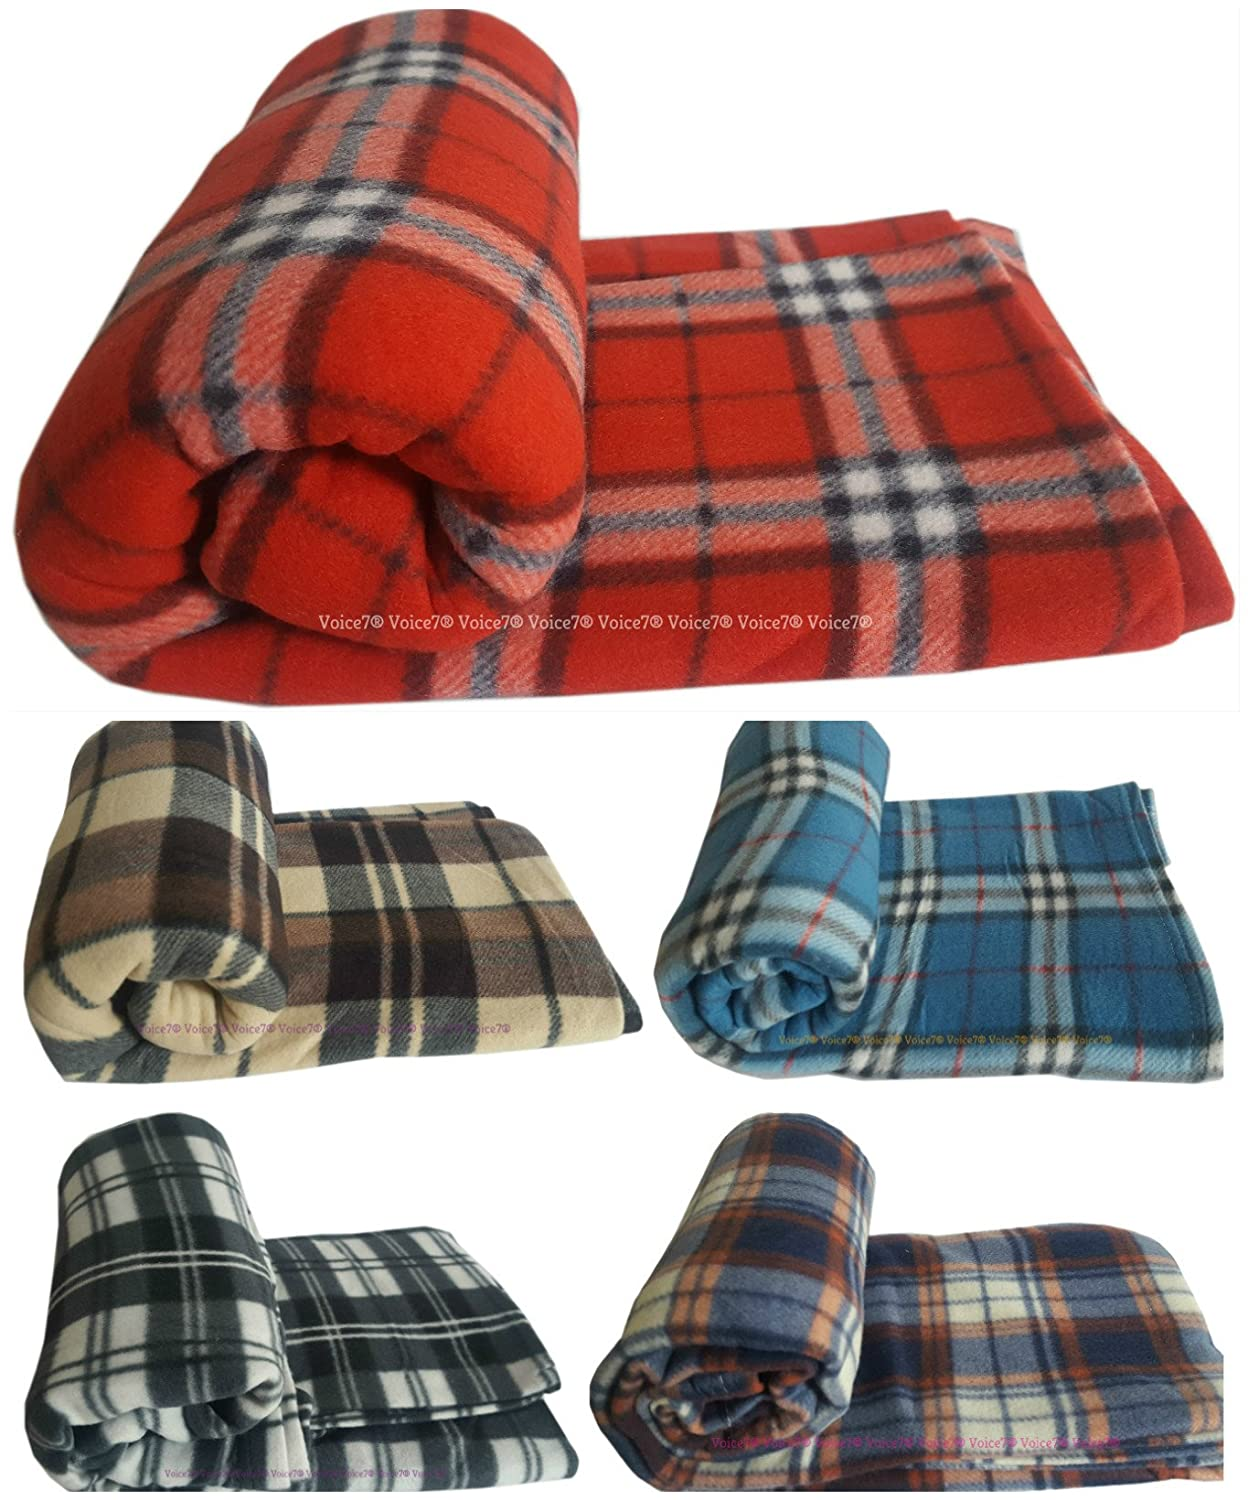 Voice7 Soft Double Size Large FLEECE Blanket/Throw ~ Luxury WARM Tartan Check Blankets 3 COLORS (LARGE: 150cm x 200cm, BROWN Check) TRTAN